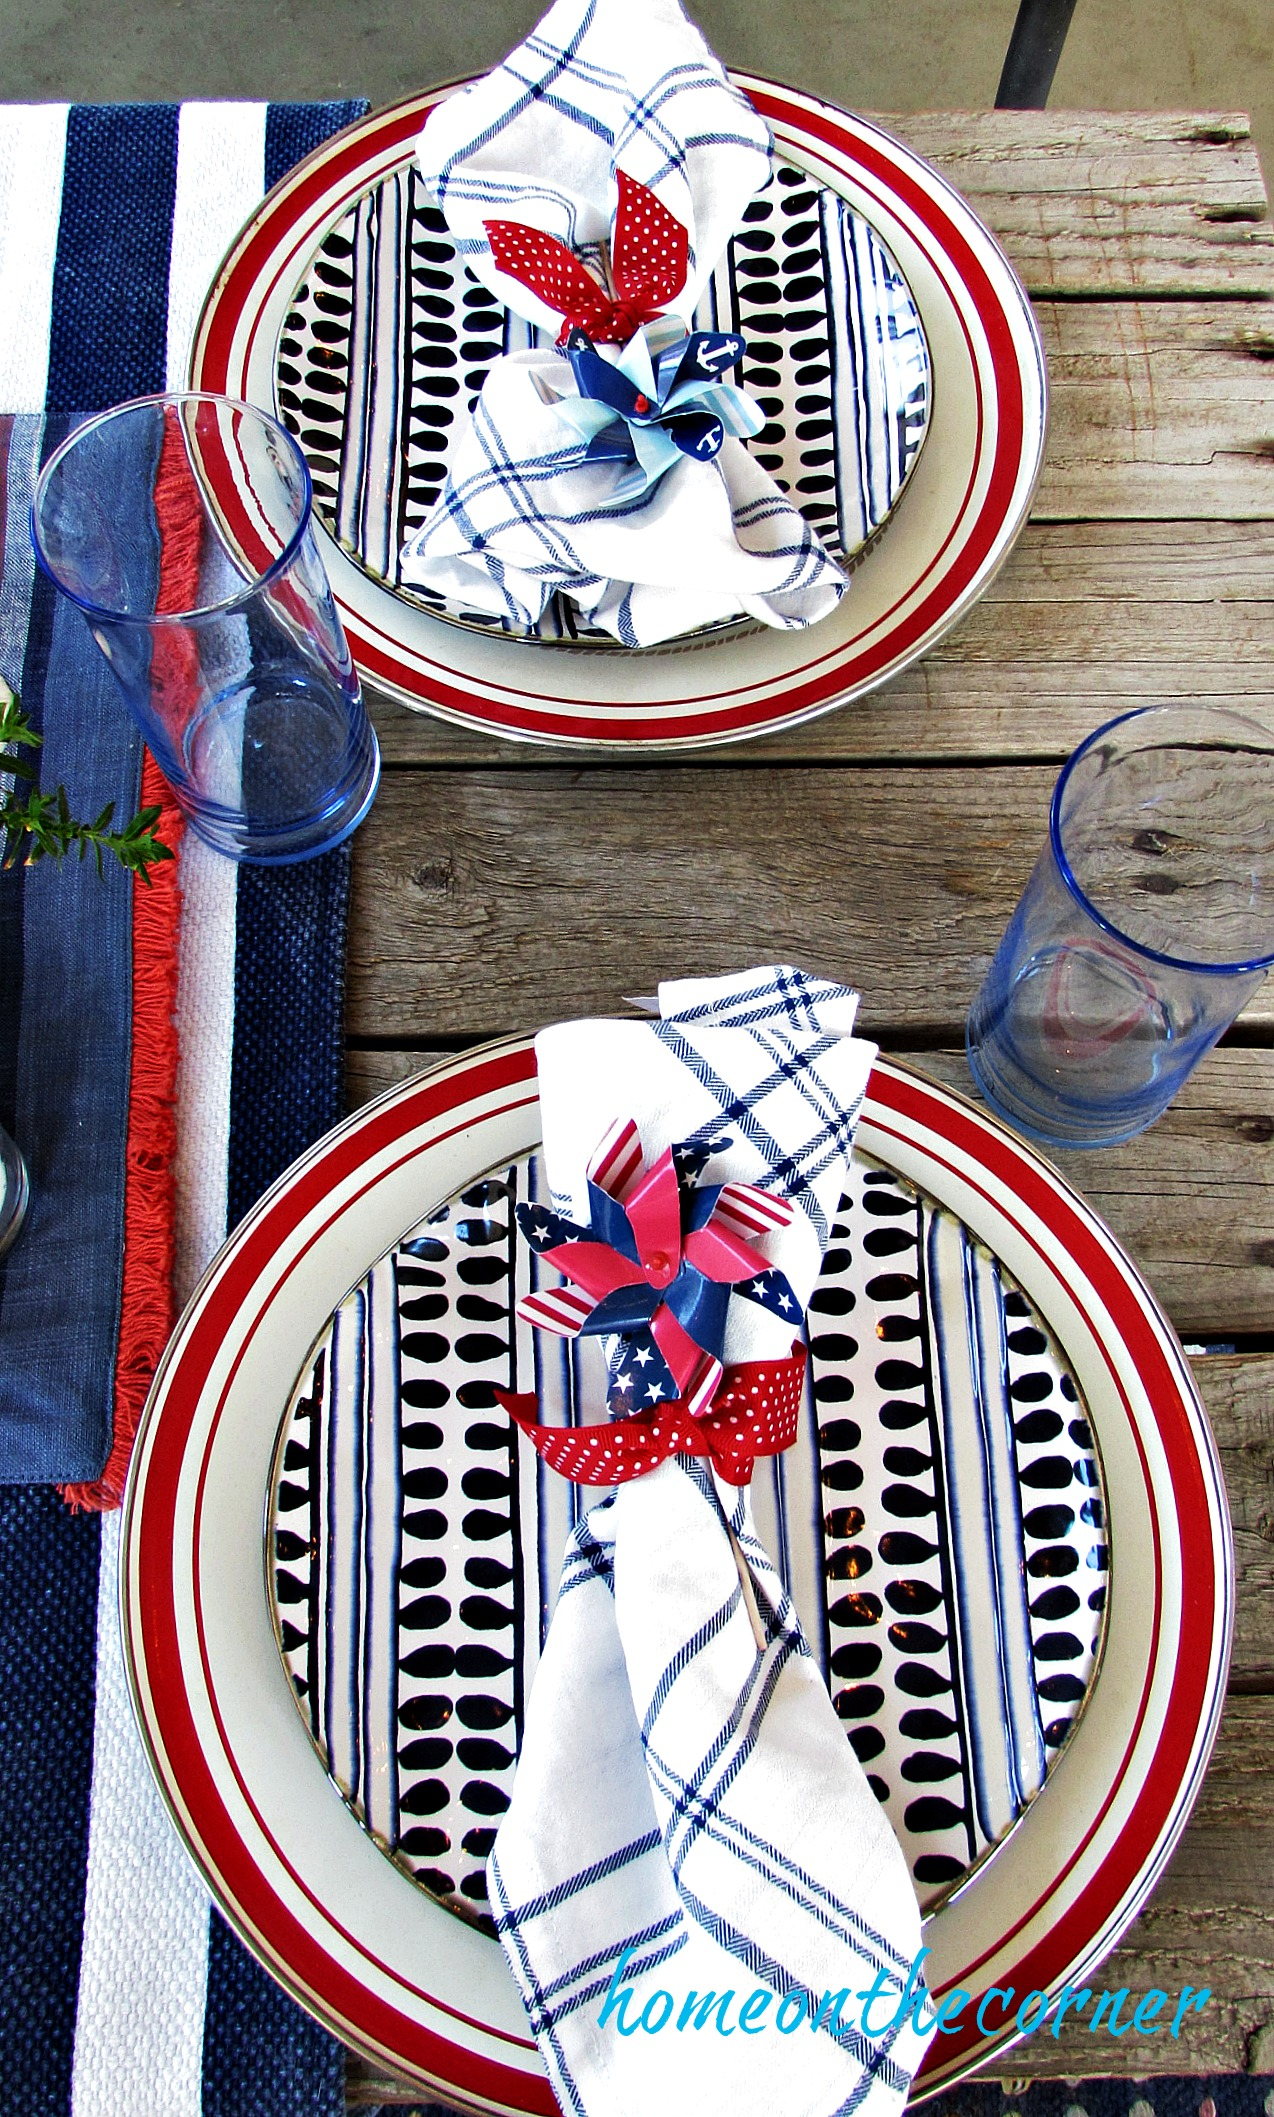 Red, white and blue outdoor table red plates